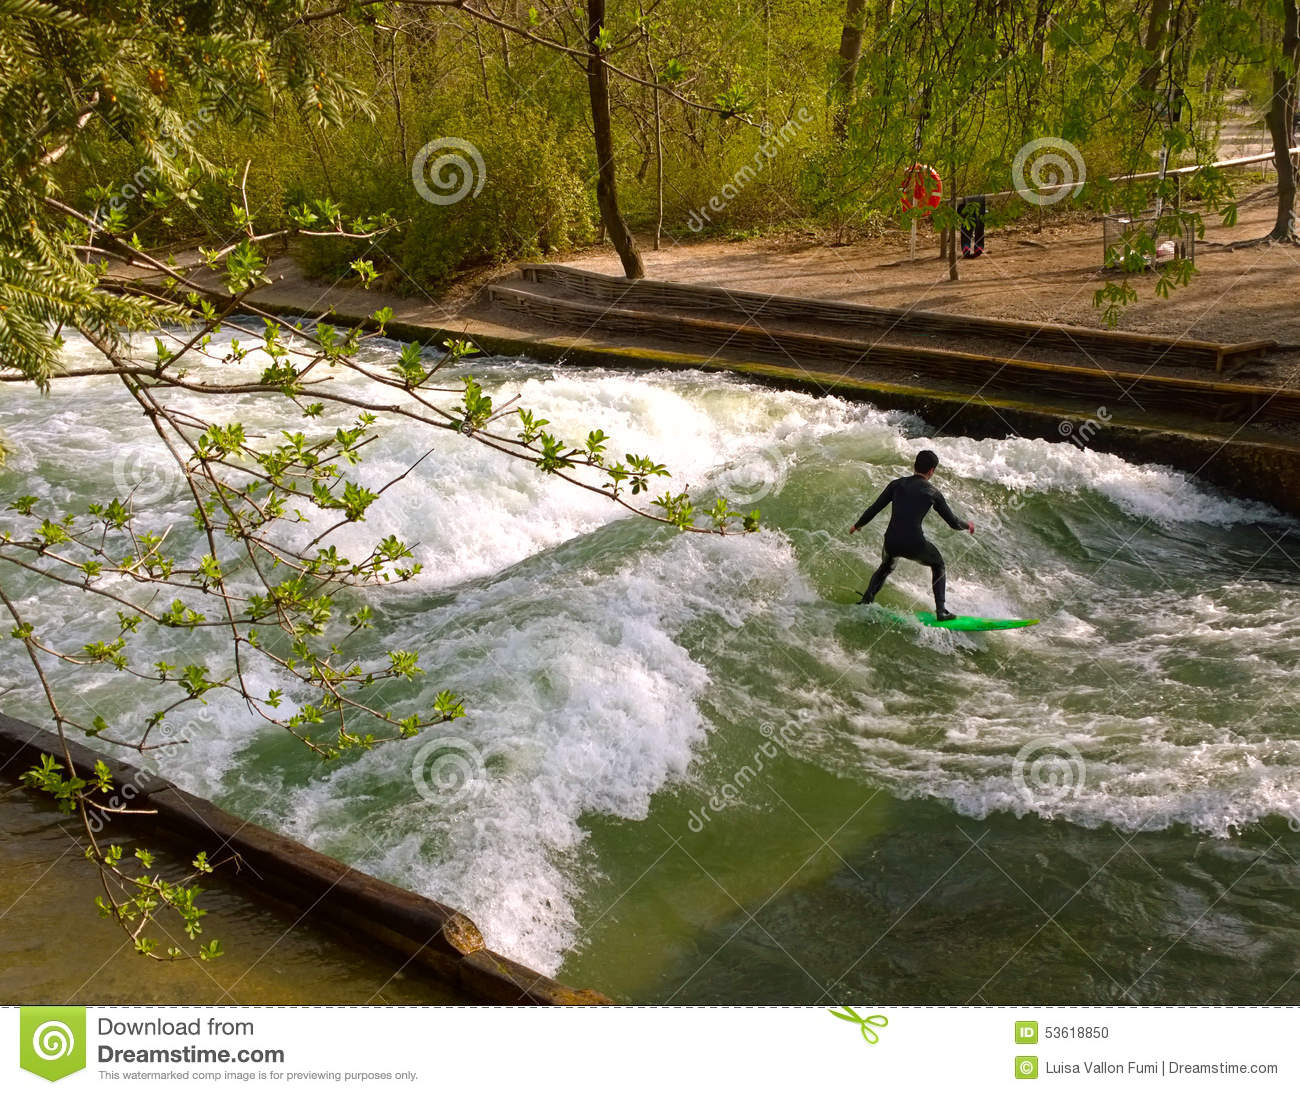 Surfing at Englischer Garden in Munich